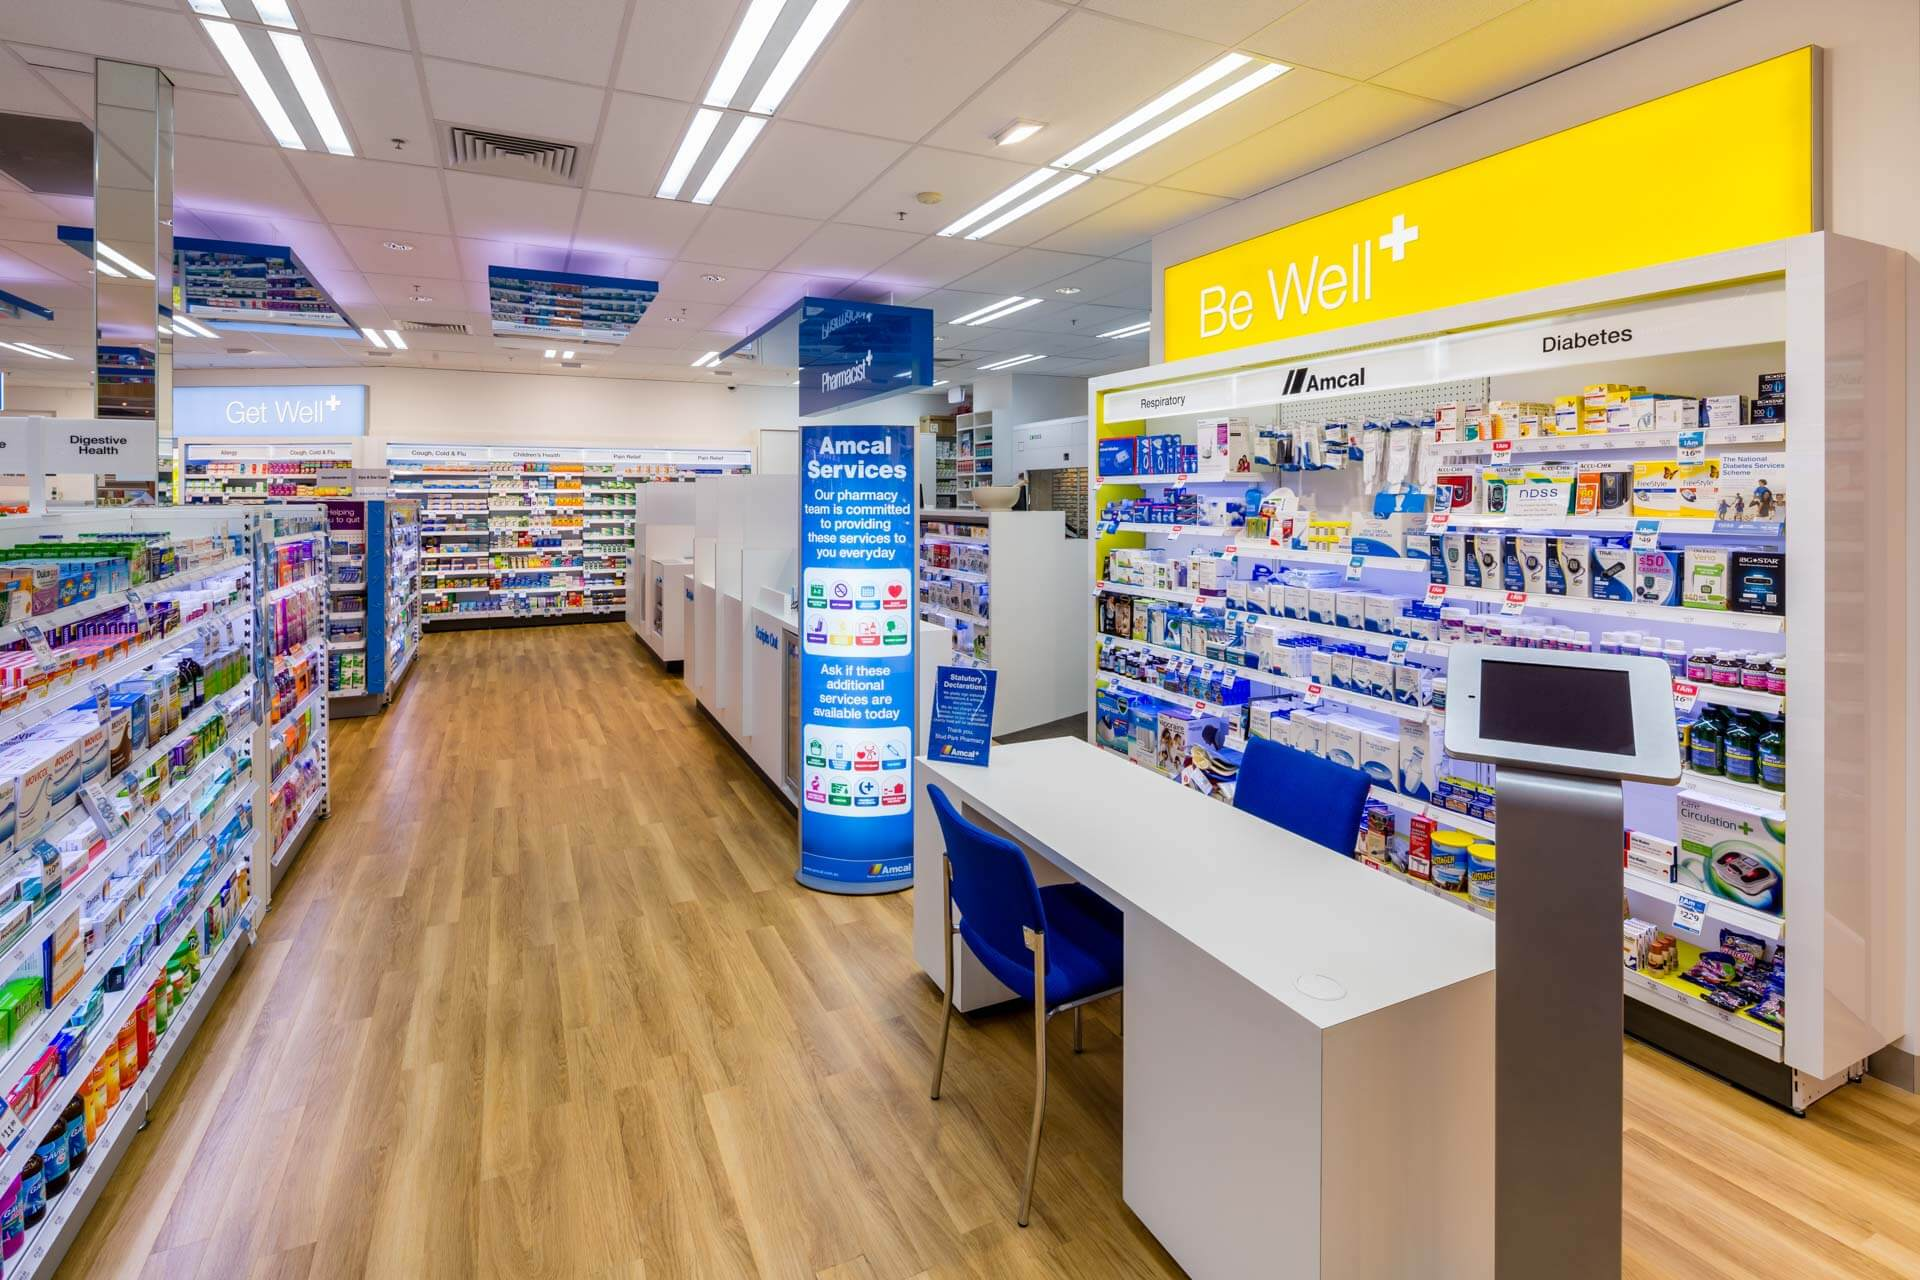 amcal+ pharmacy internal photograph of be well product area and pharmacy serving bays by sigma pharmaceuticals in stud park shopping centre